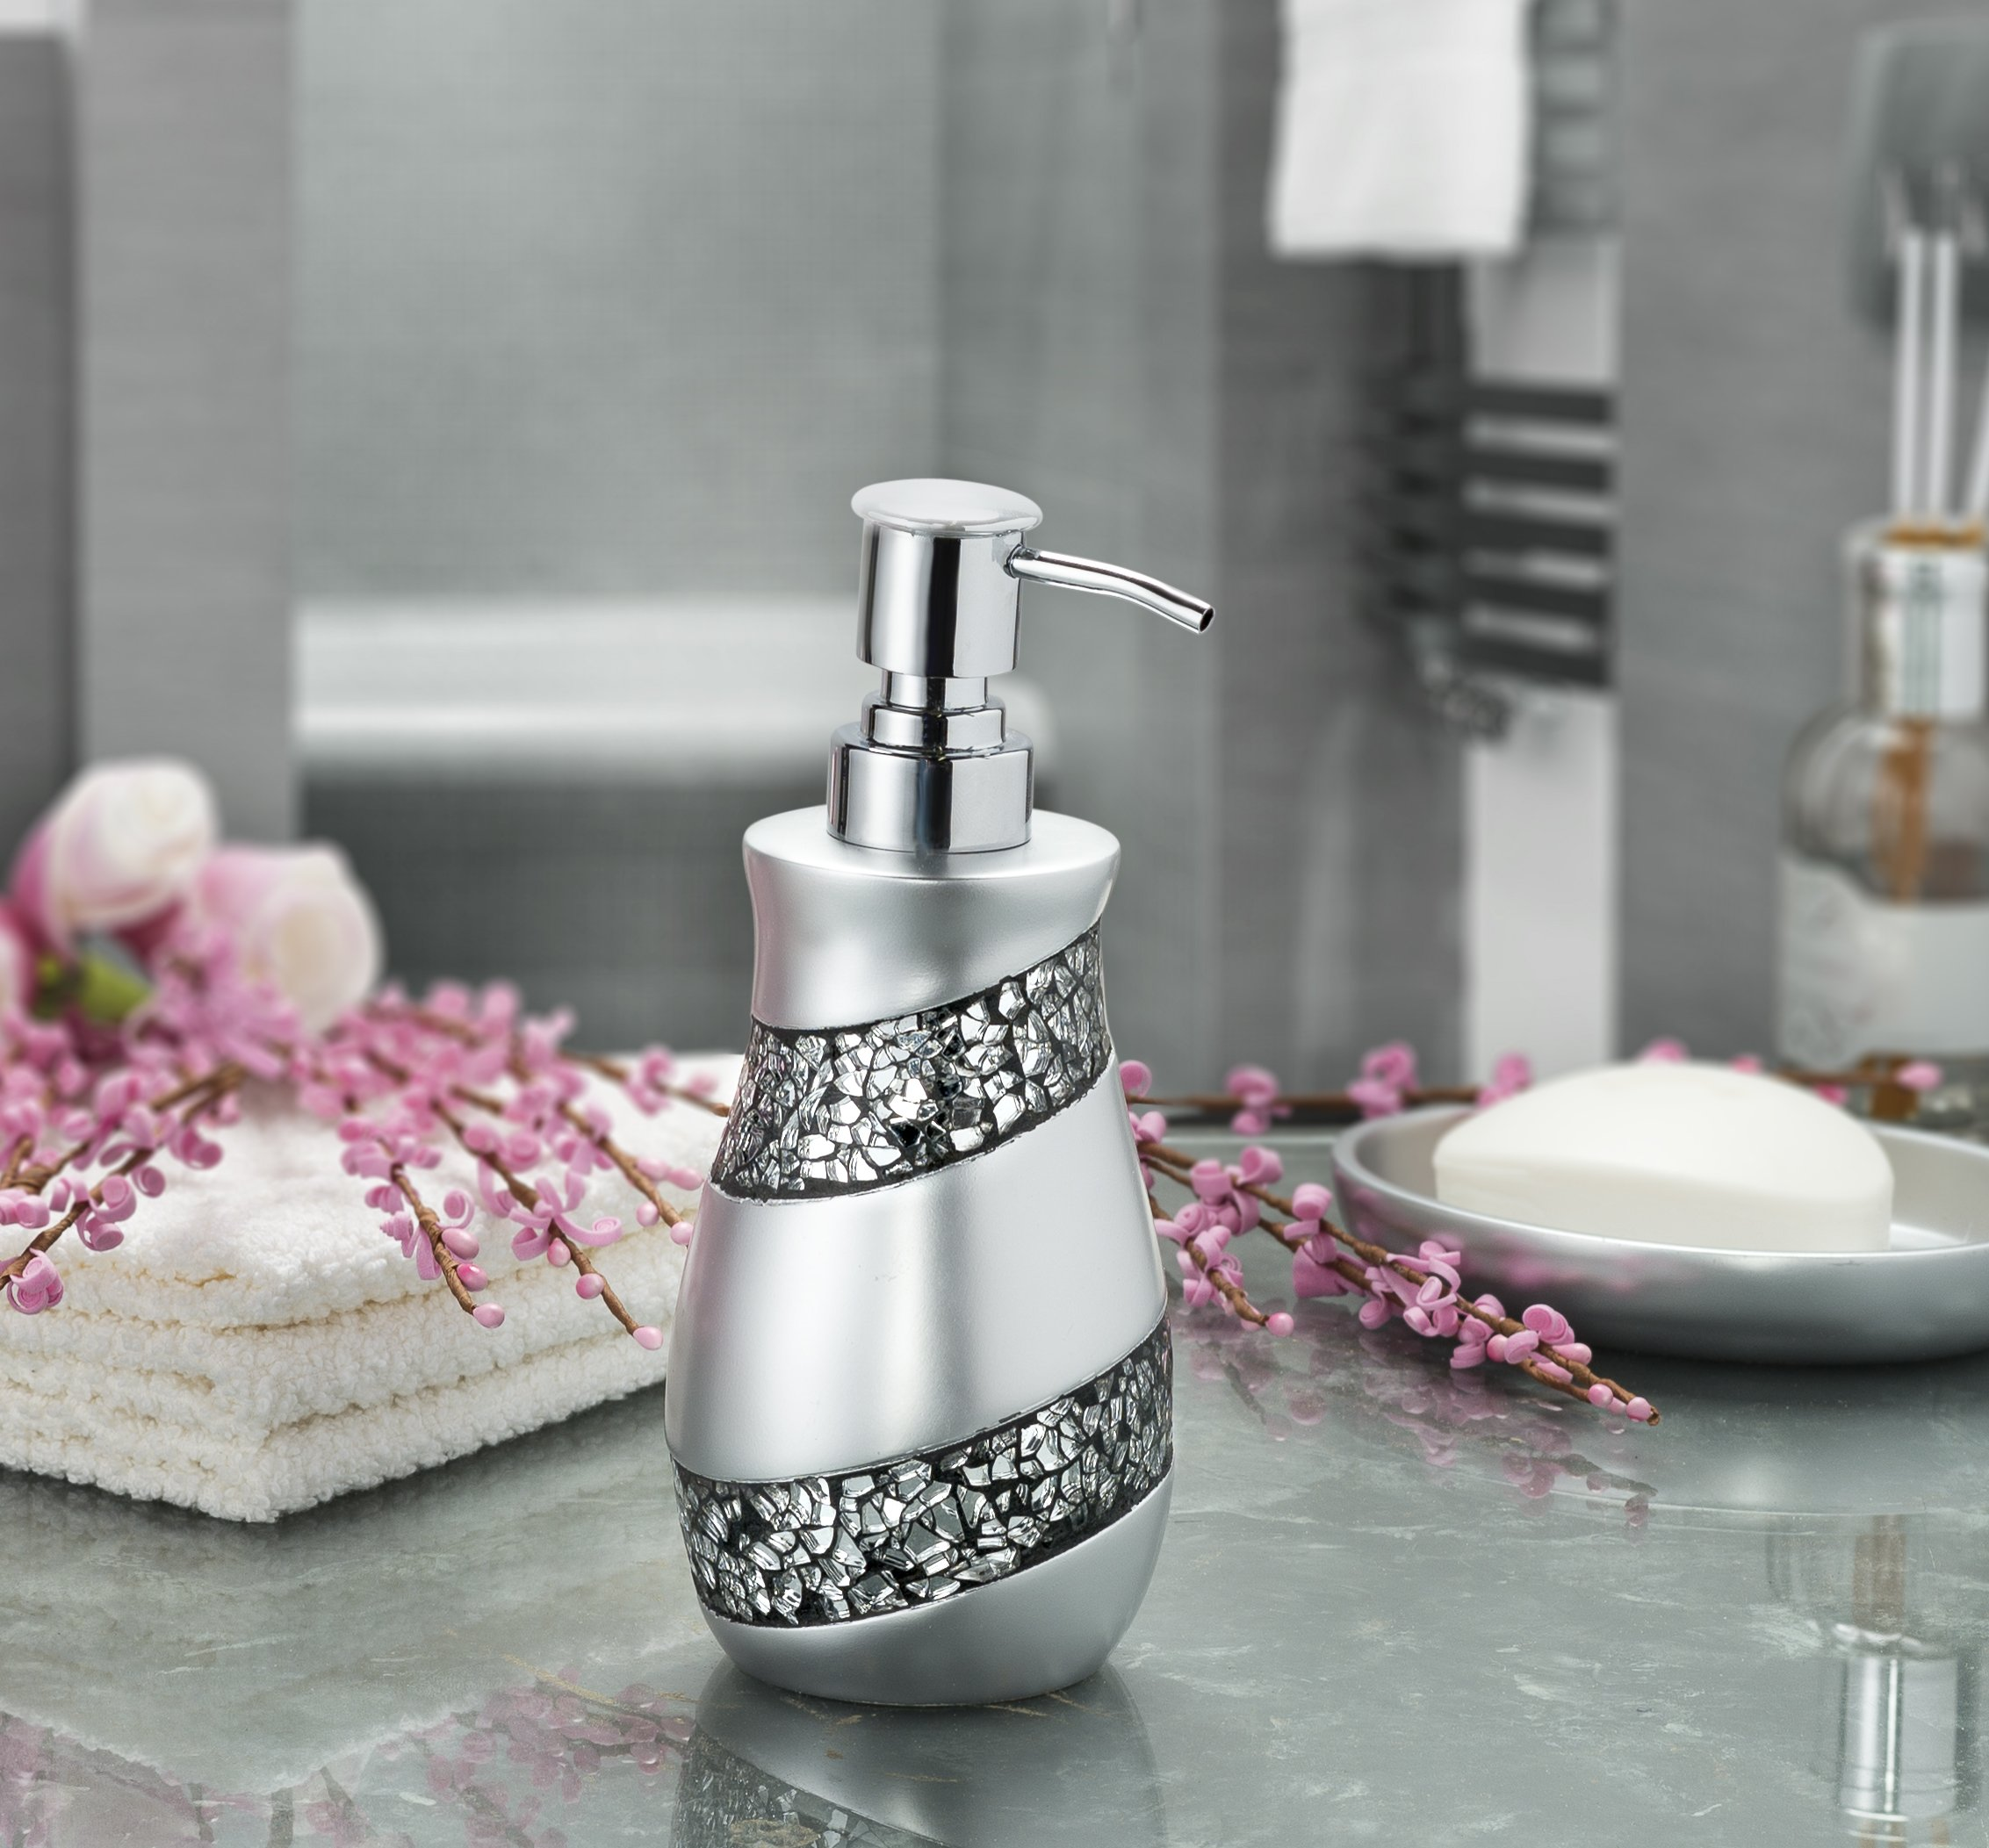 Dwellza Silver Mosaic Bathroom Accessories Set, 6 Piece Bath Set Collection  Features Soap Dispenser, Toothbrush Holder, Tumbler, Soap Dish, Tissue  Cover, ...